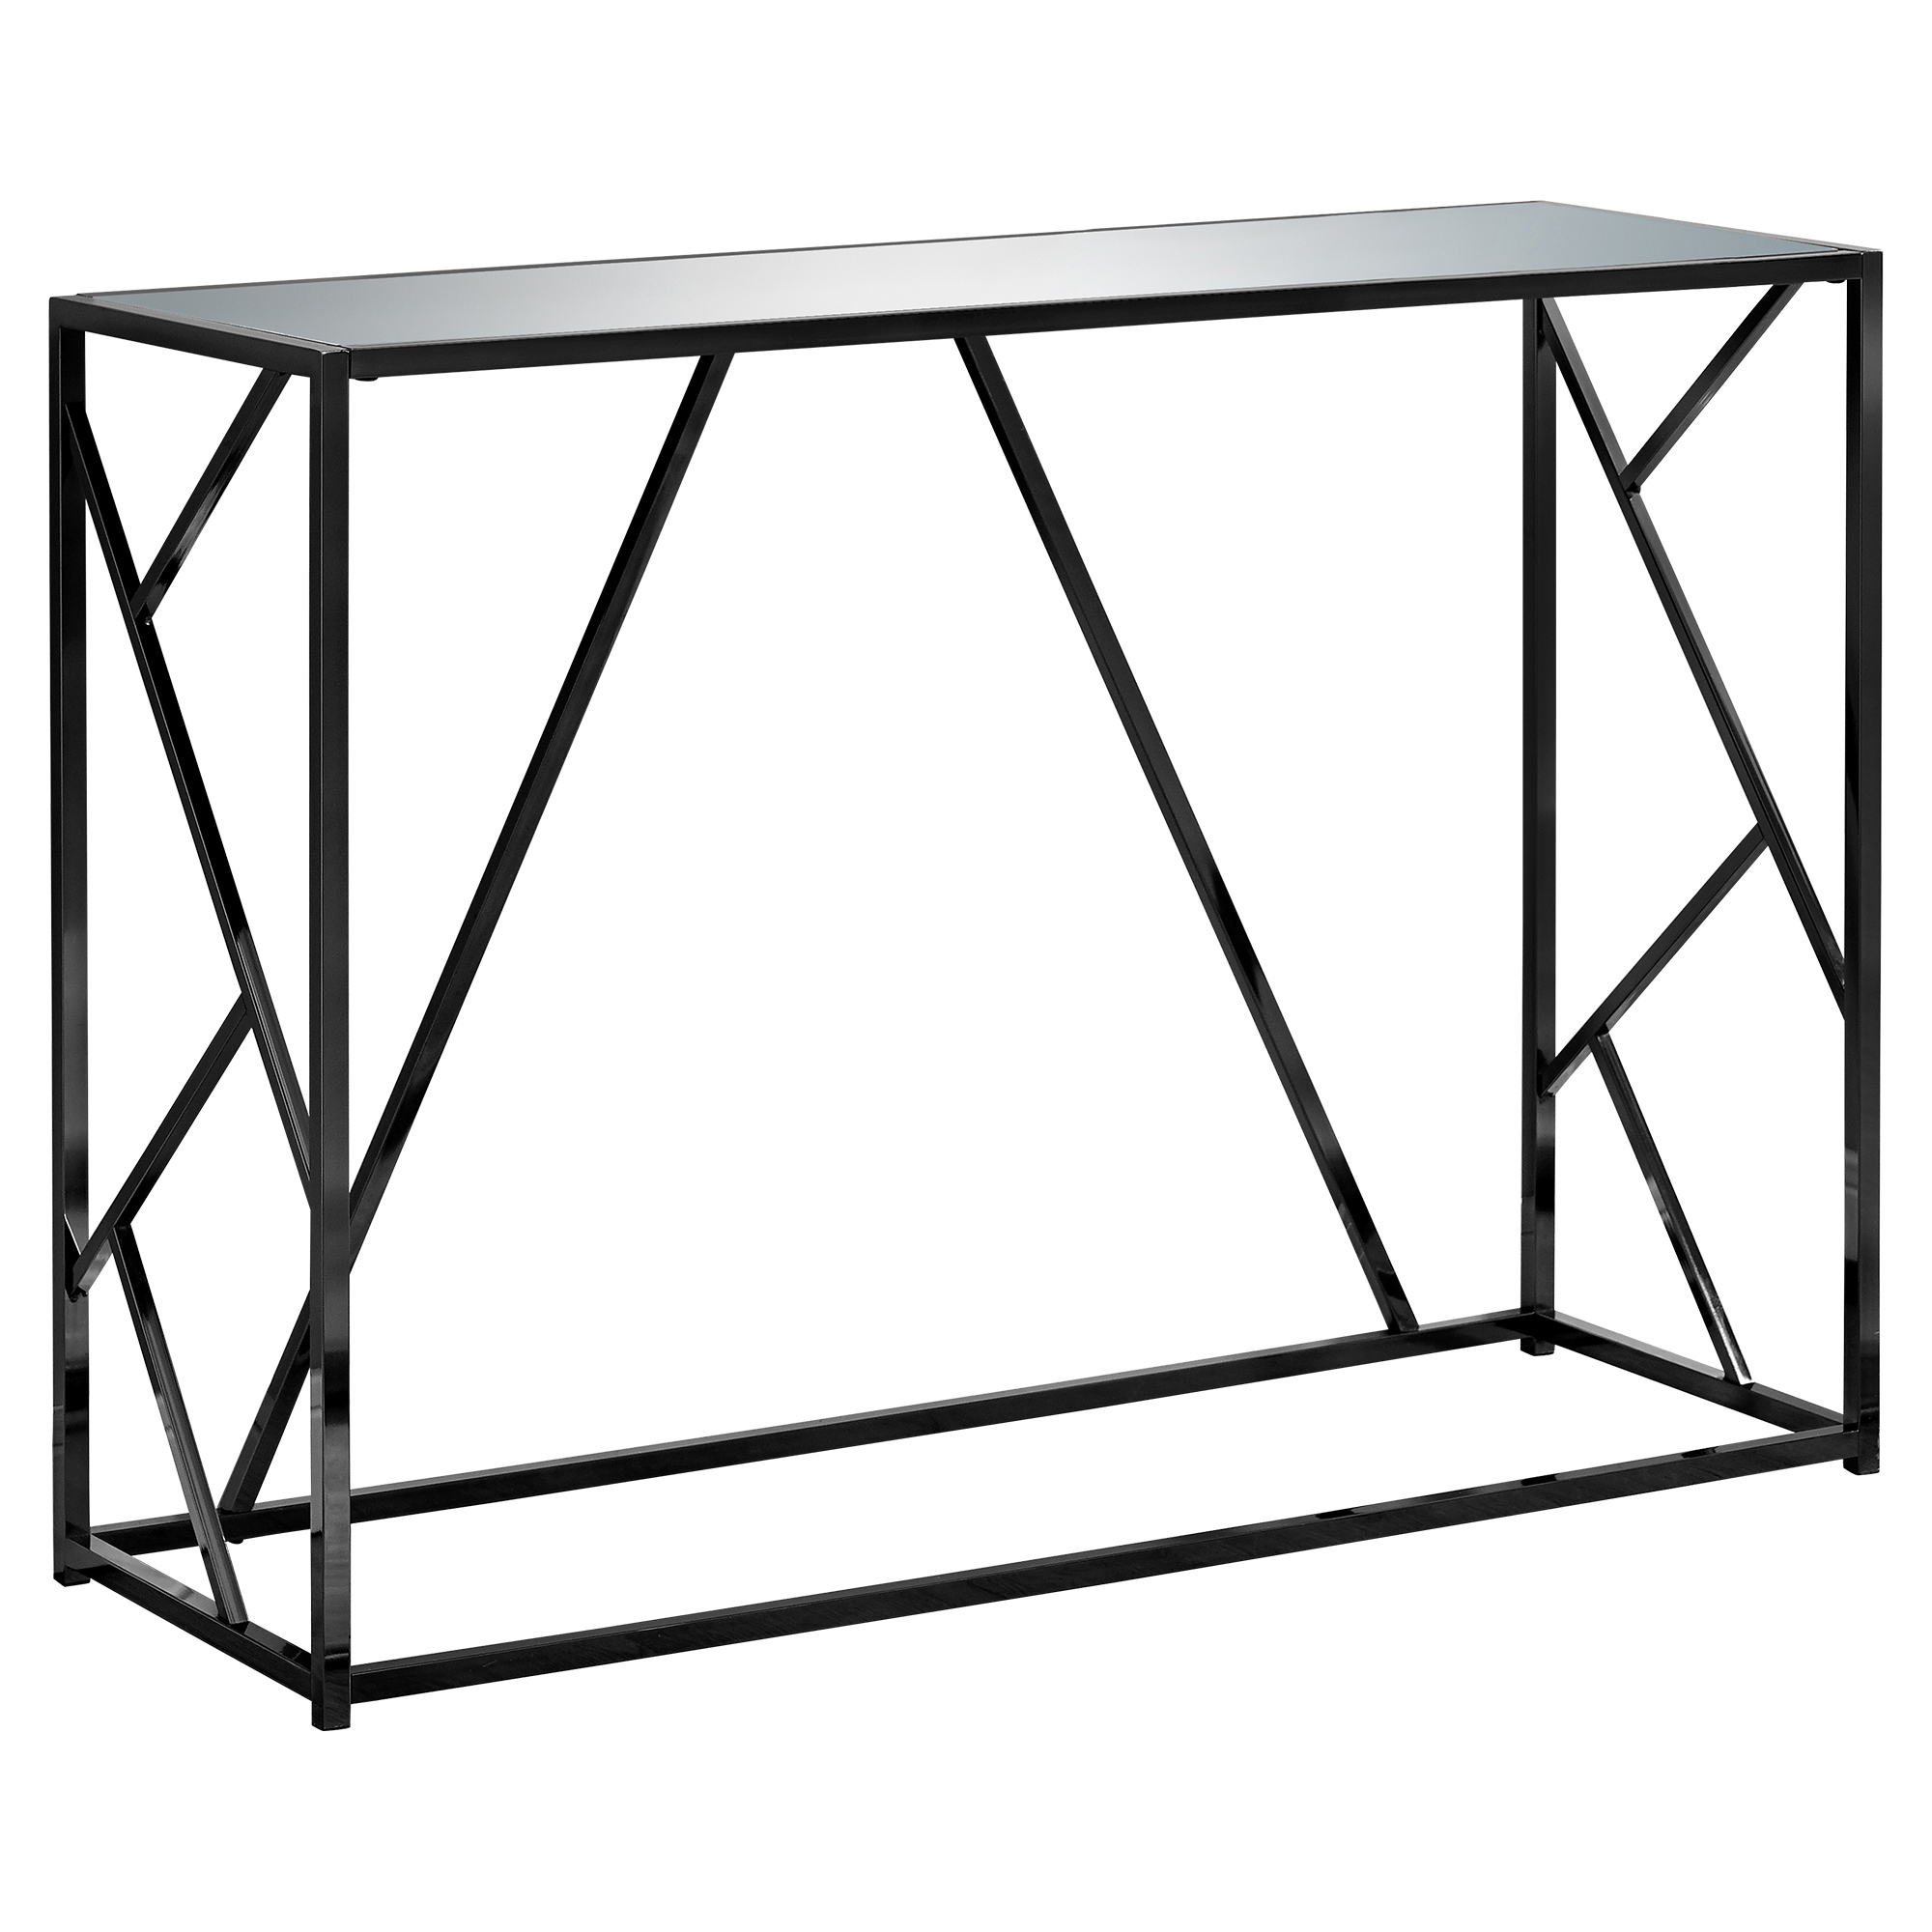 "CONSOLE TABLE - 42""L / BLACK NICKEL METAL / MIRROR TOP"